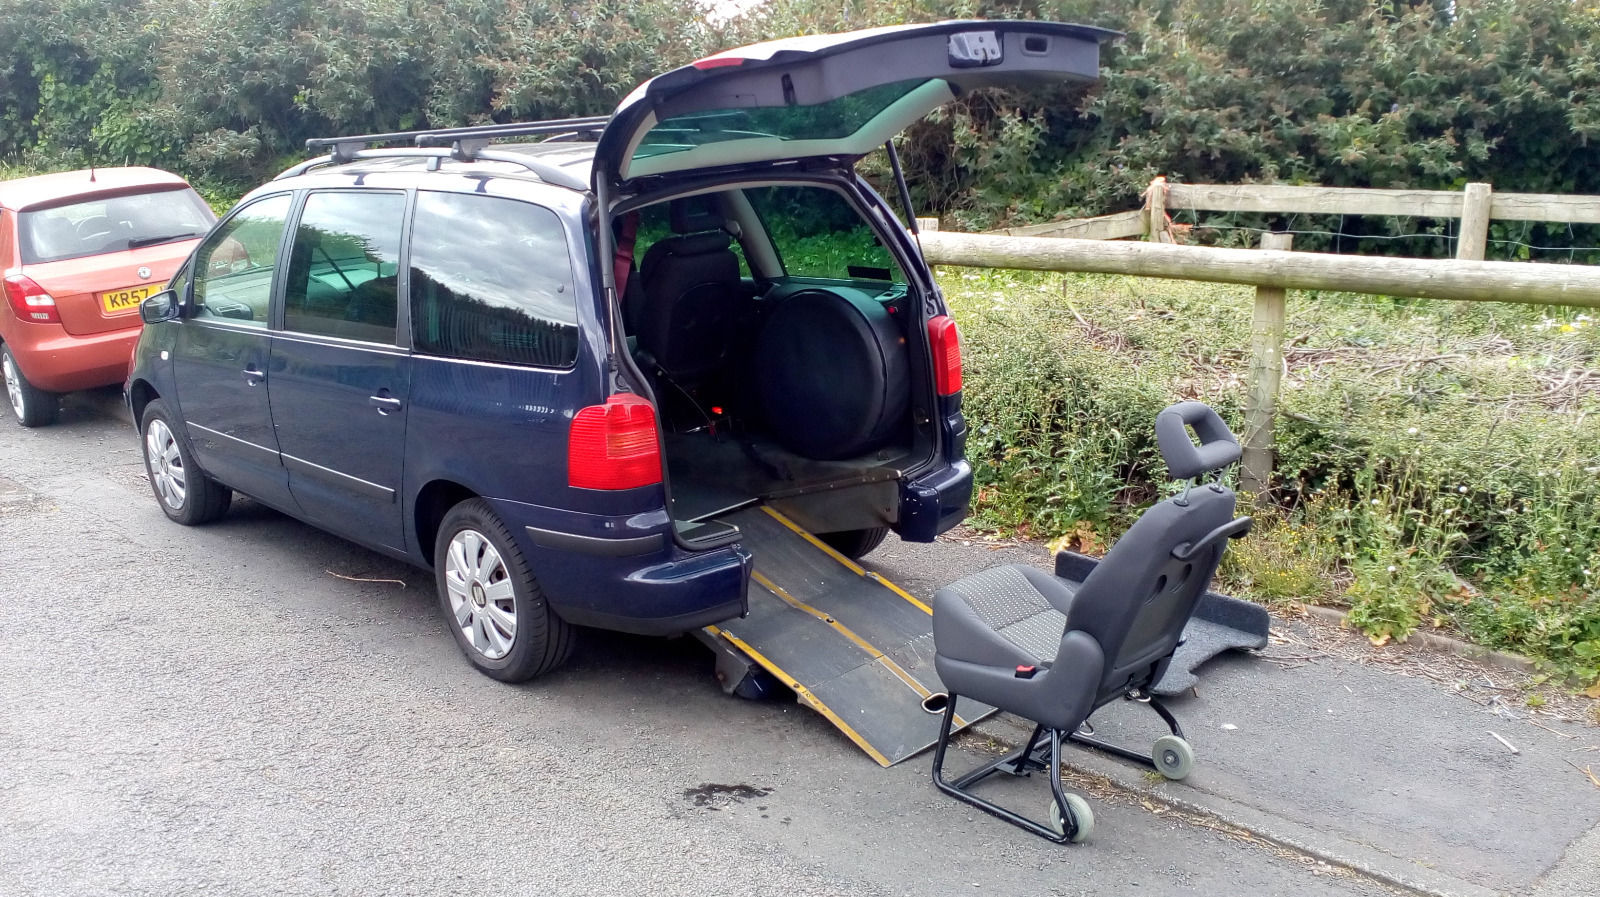 SEAT ALHAMBRA TDI WHEELCHAIR ACCESS VEHICLE